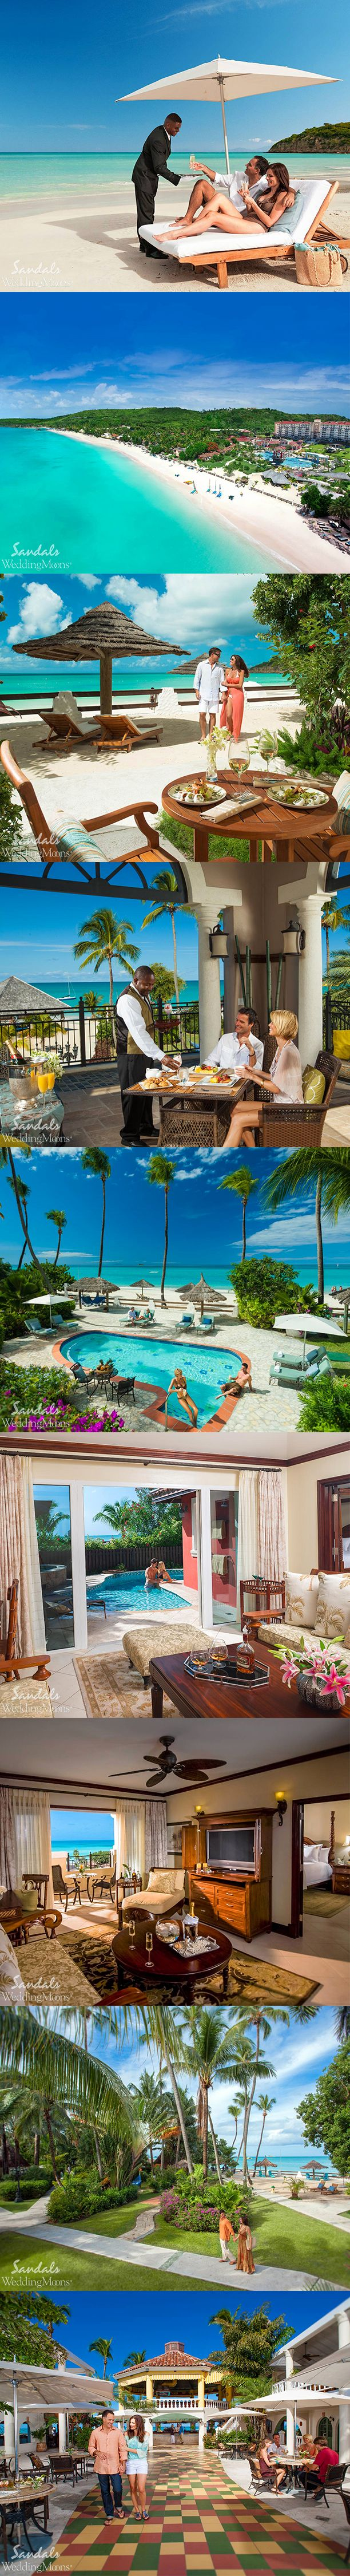 SANDALS WEDDING INSIDERS: HONEYMOON IN ANTIGUA For a secluded yet sophisticated experience, honeymoon in Antigua!